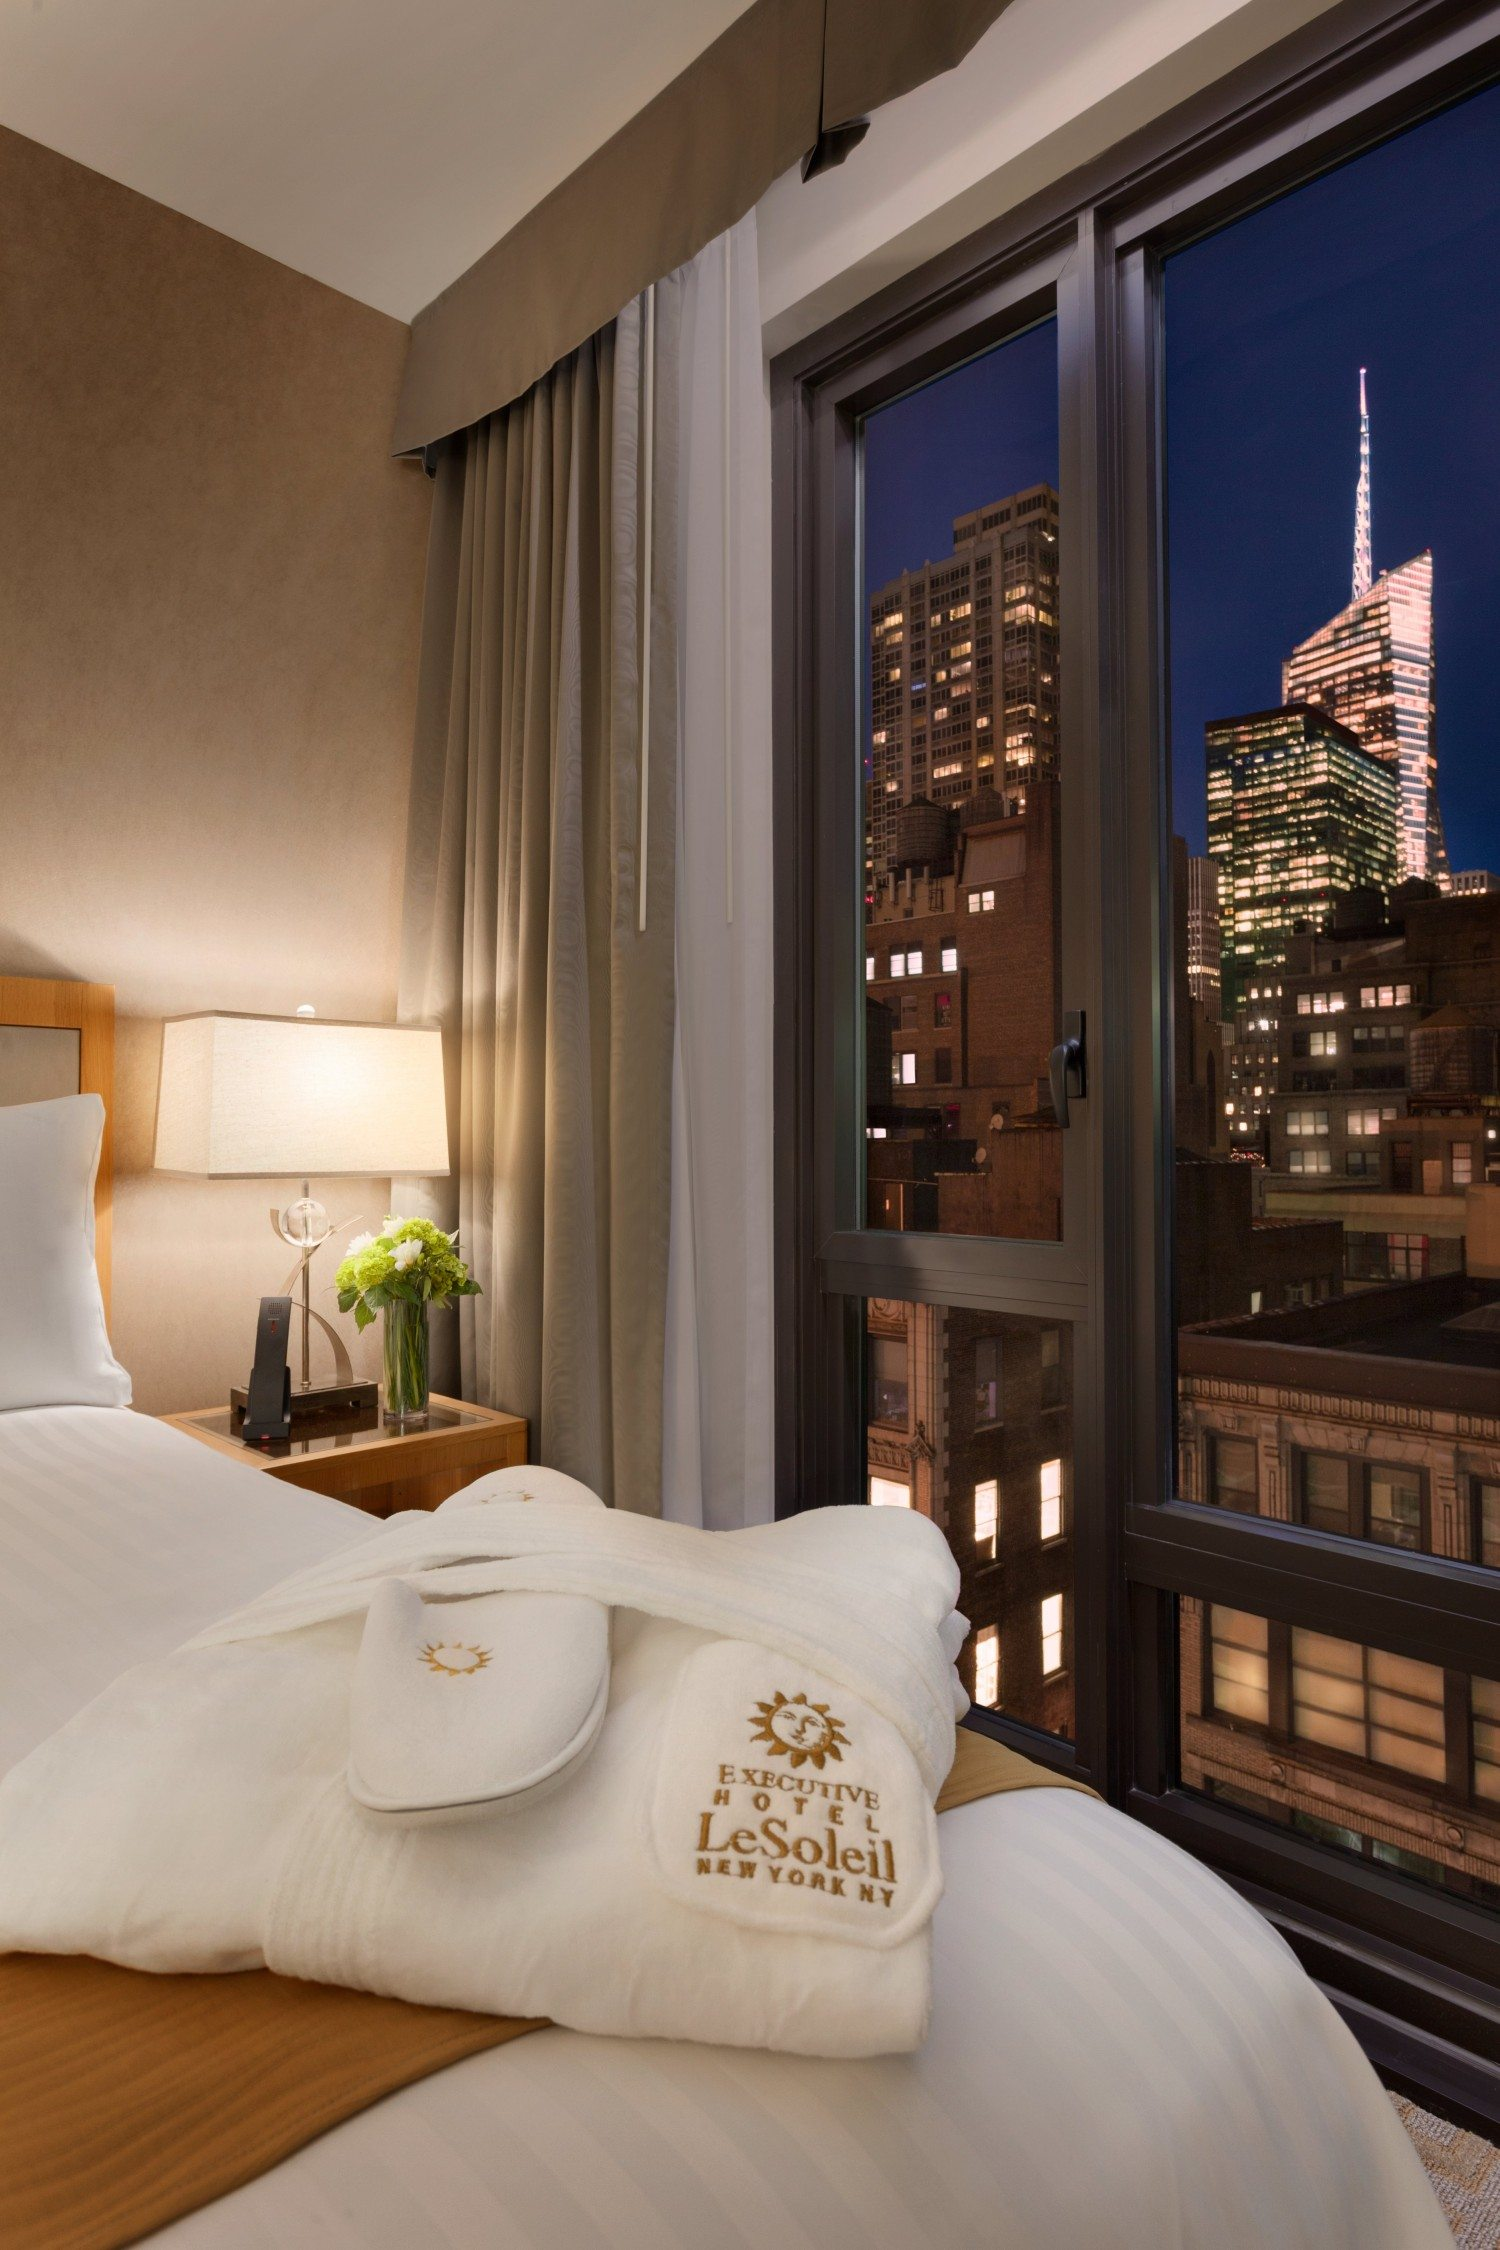 Executive Hotel Le Soleil New York City - Executive Queen Suite with View - 1068162